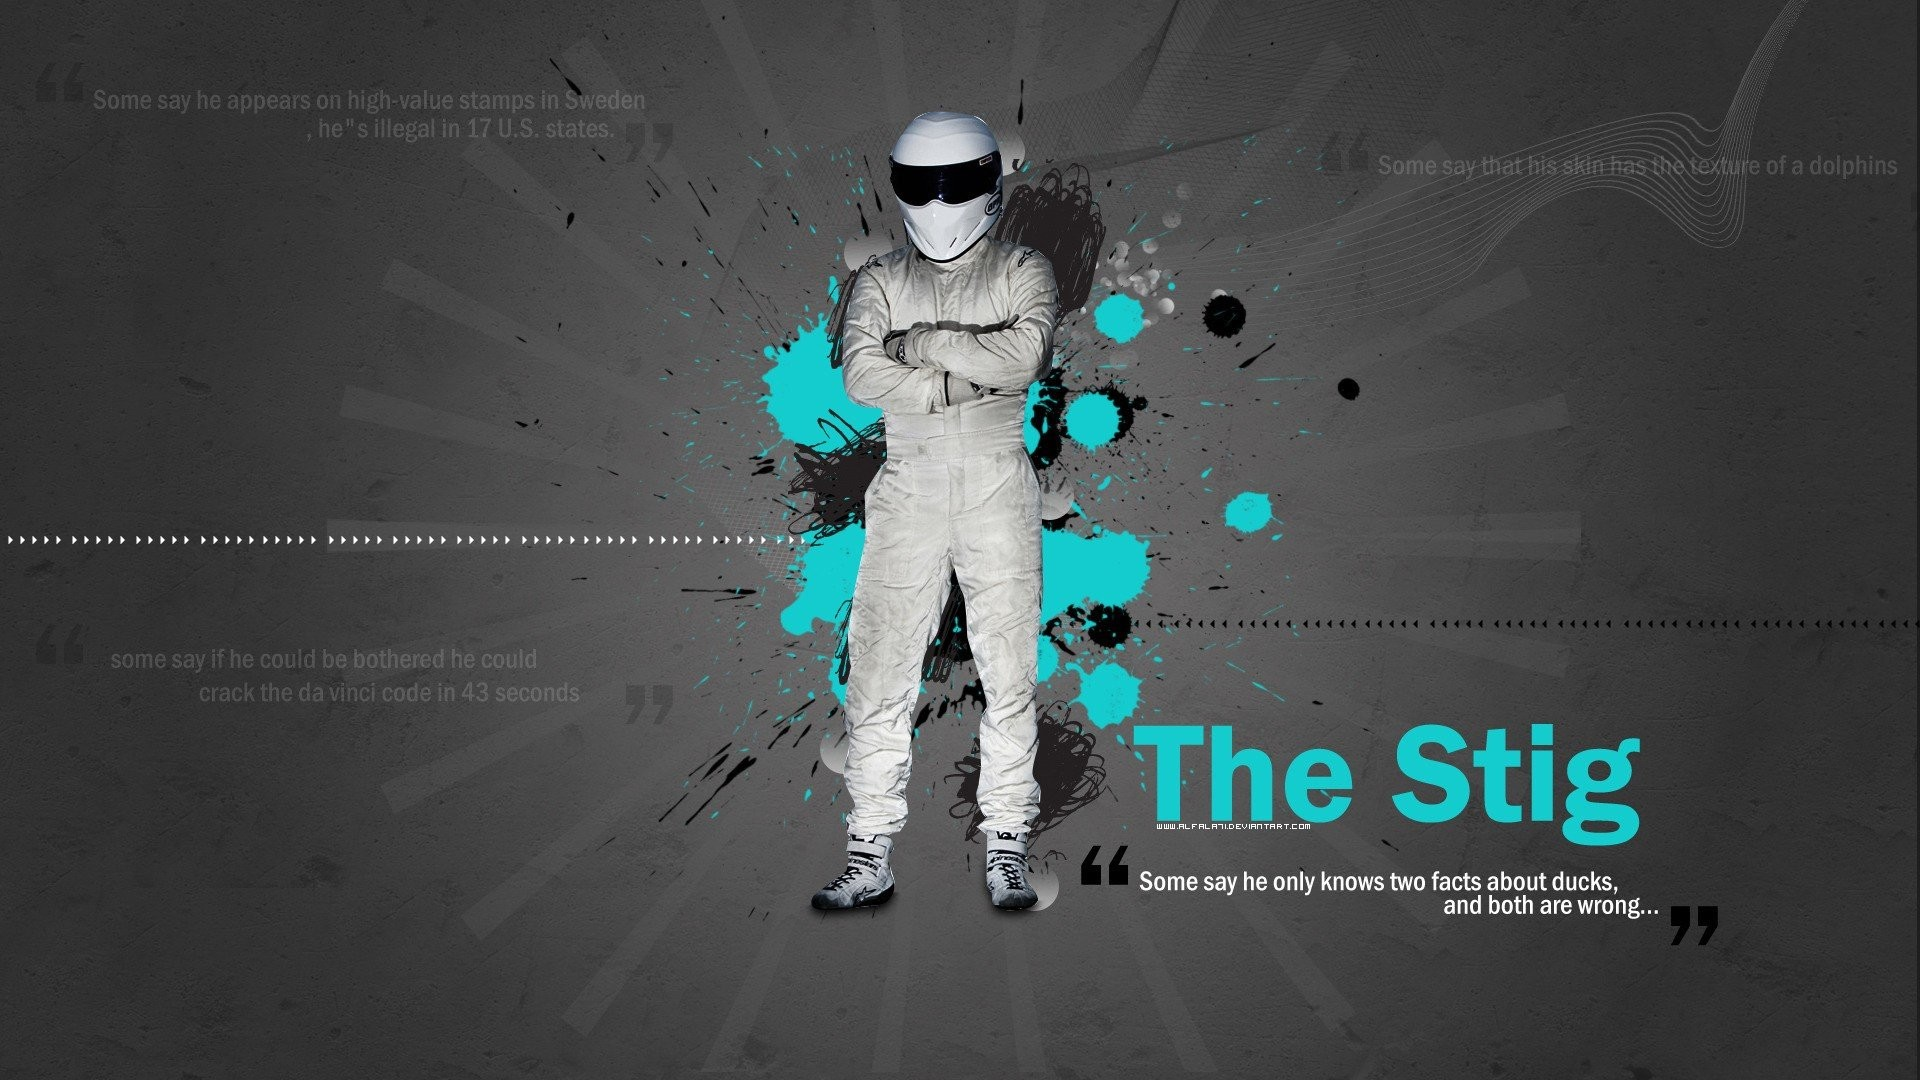 1920x1080 ... 2 Guns wallpaper - Movie wallpapers - #21791 The Stig Wallpaper -  WallpaperSafari